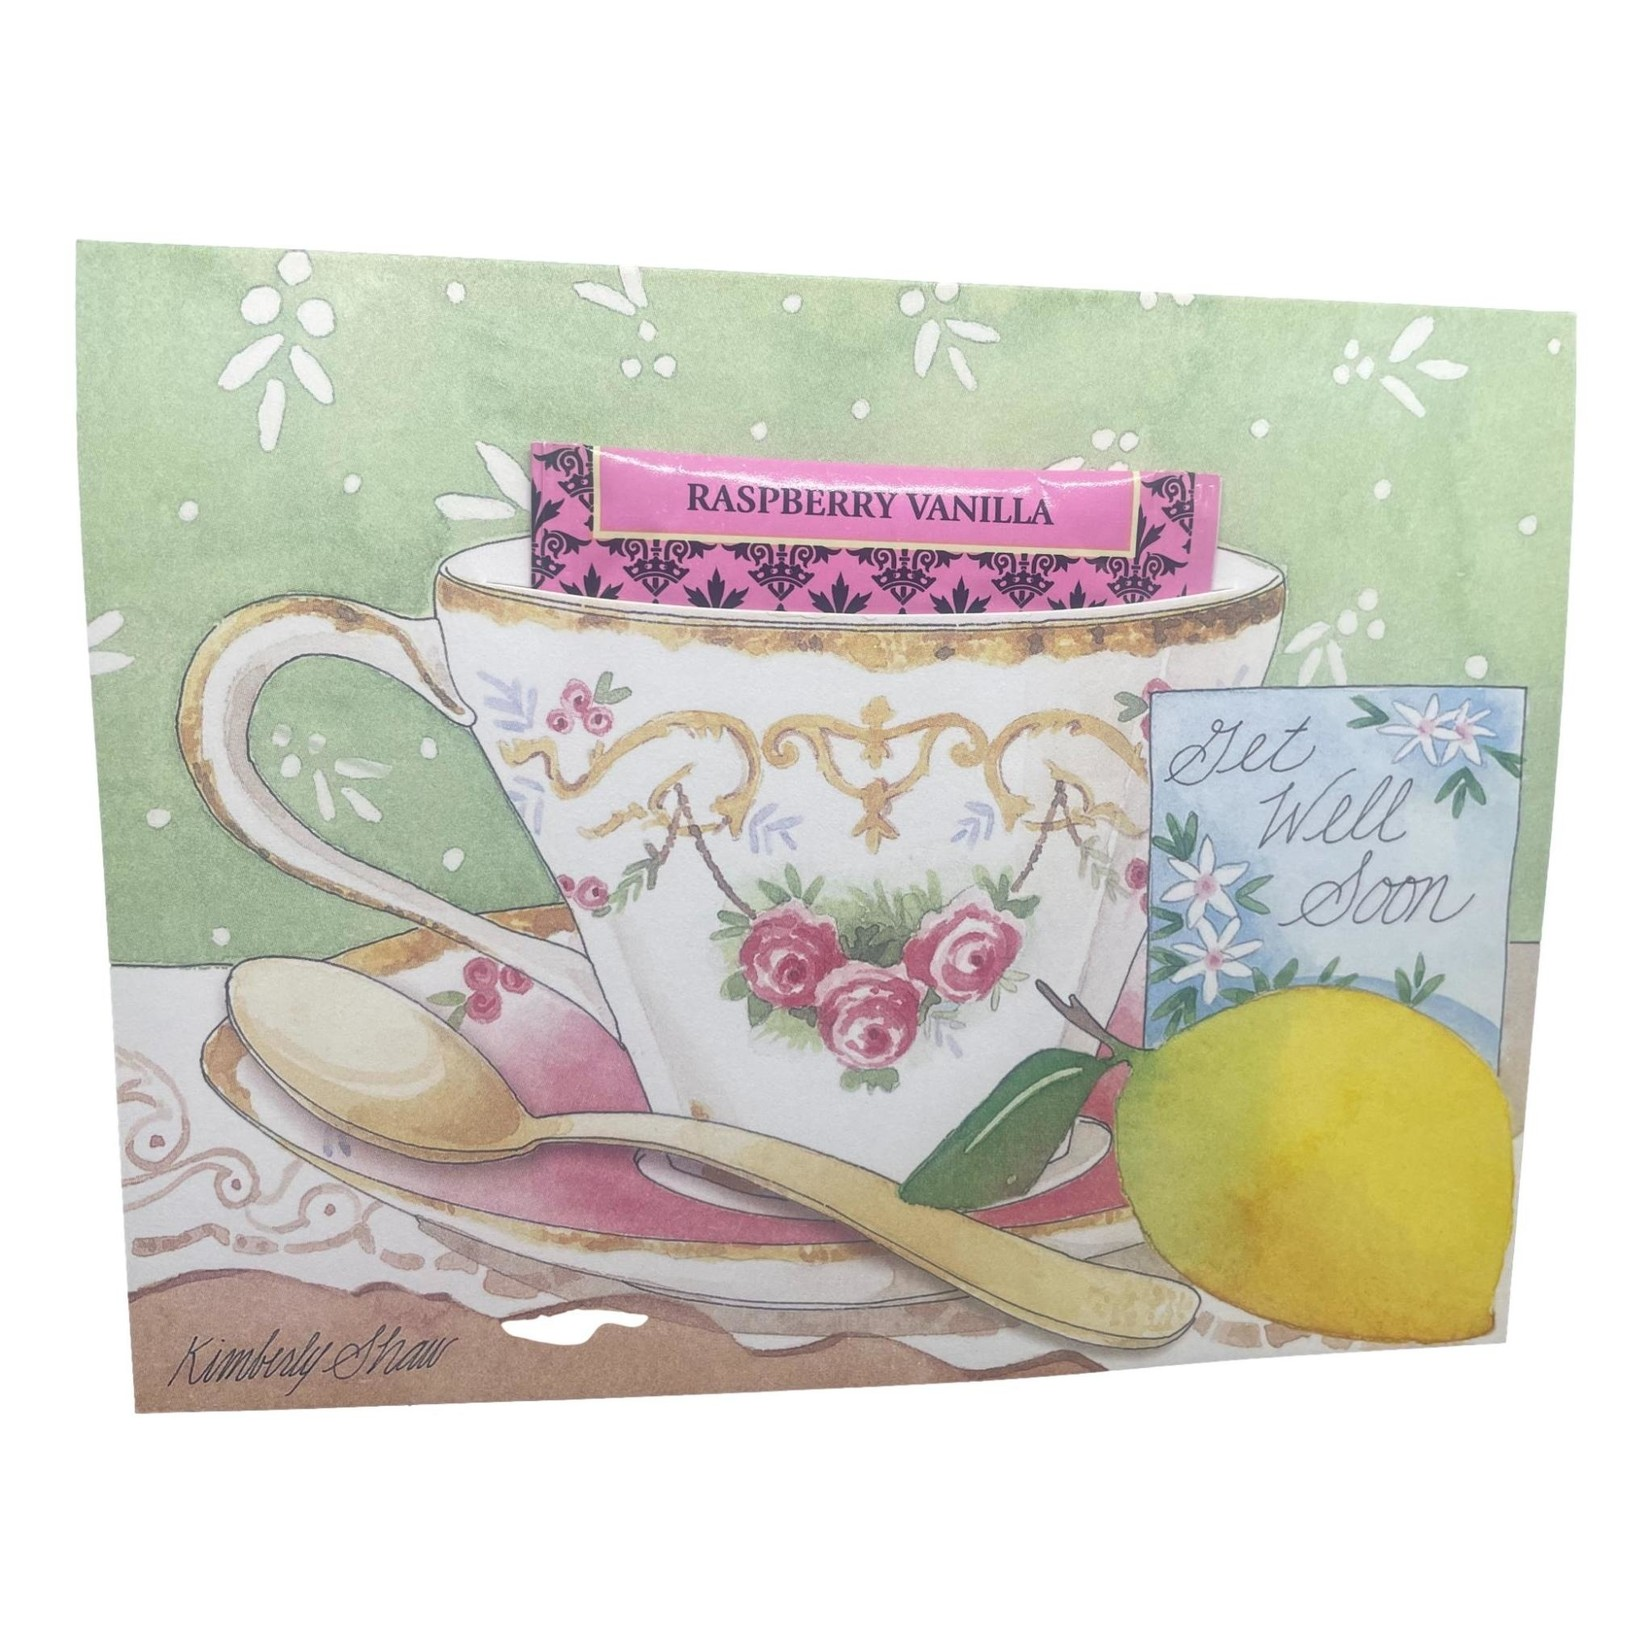 Kimberly Shaw Get Well SoonTeacup Card